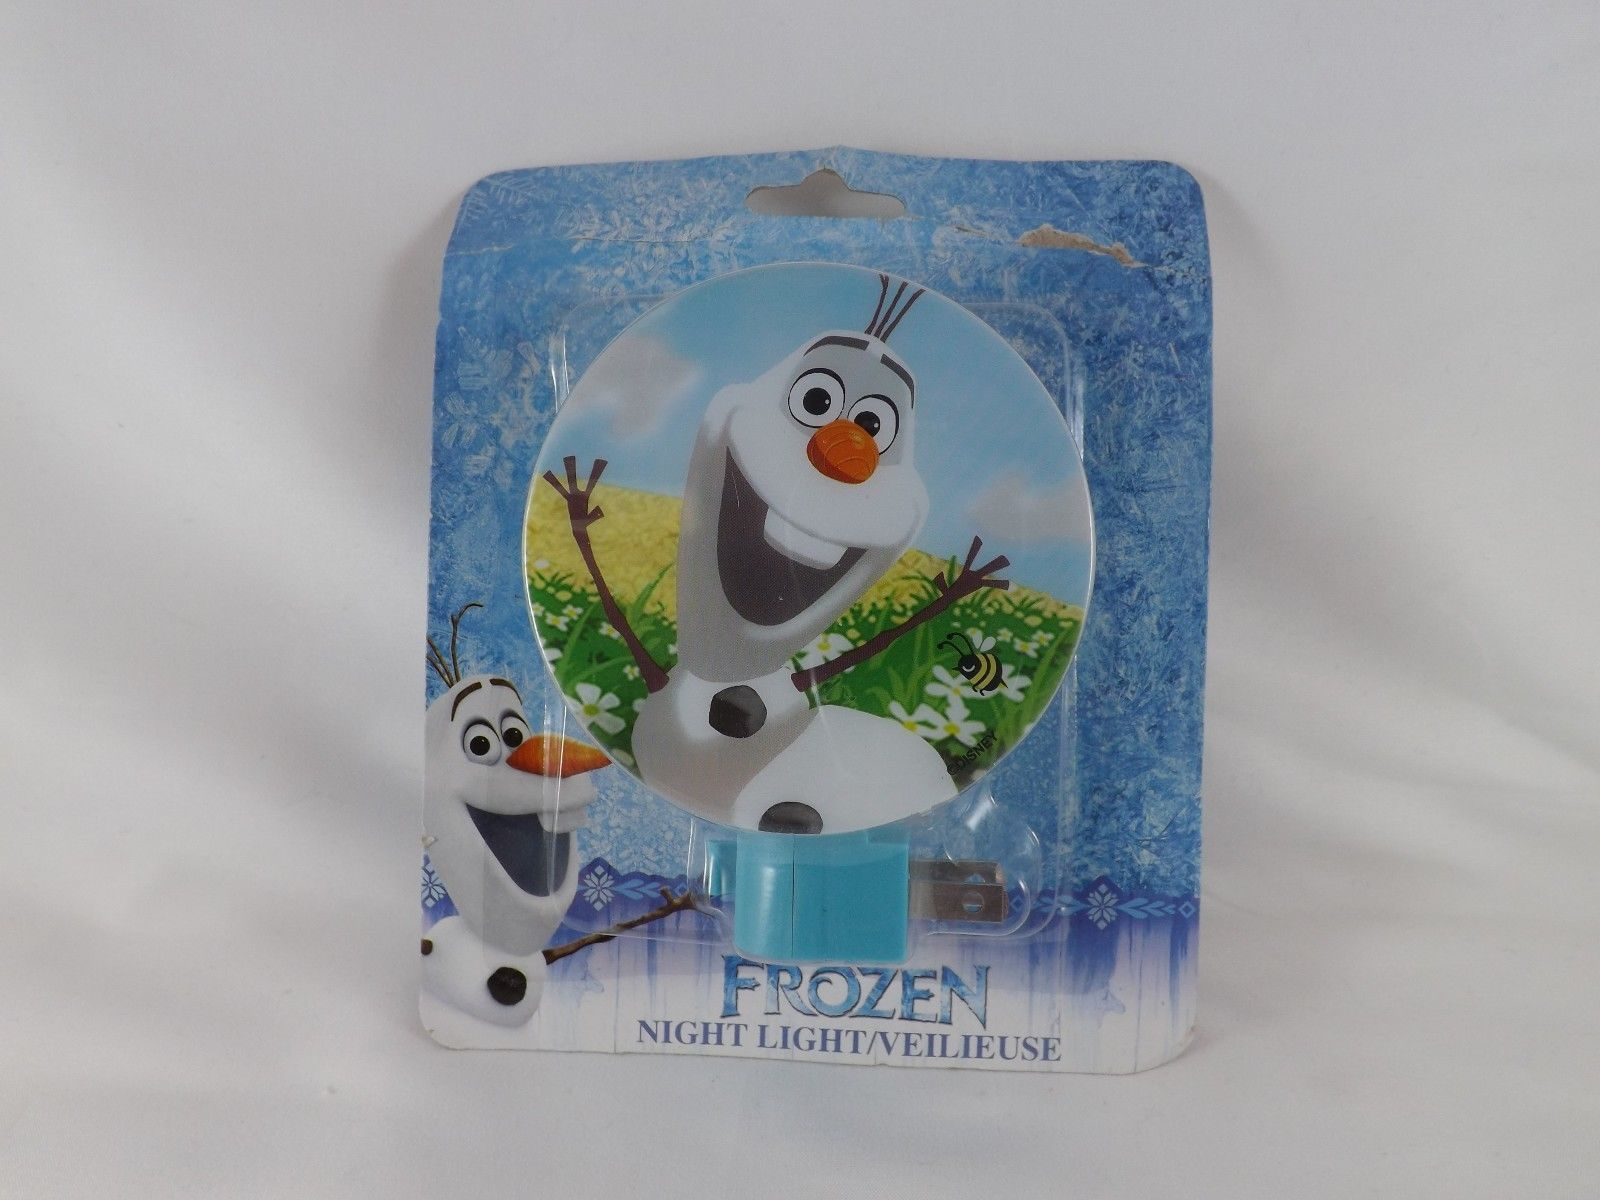 Disney Frozen Night Light with On/Off Switch - New - Olaf